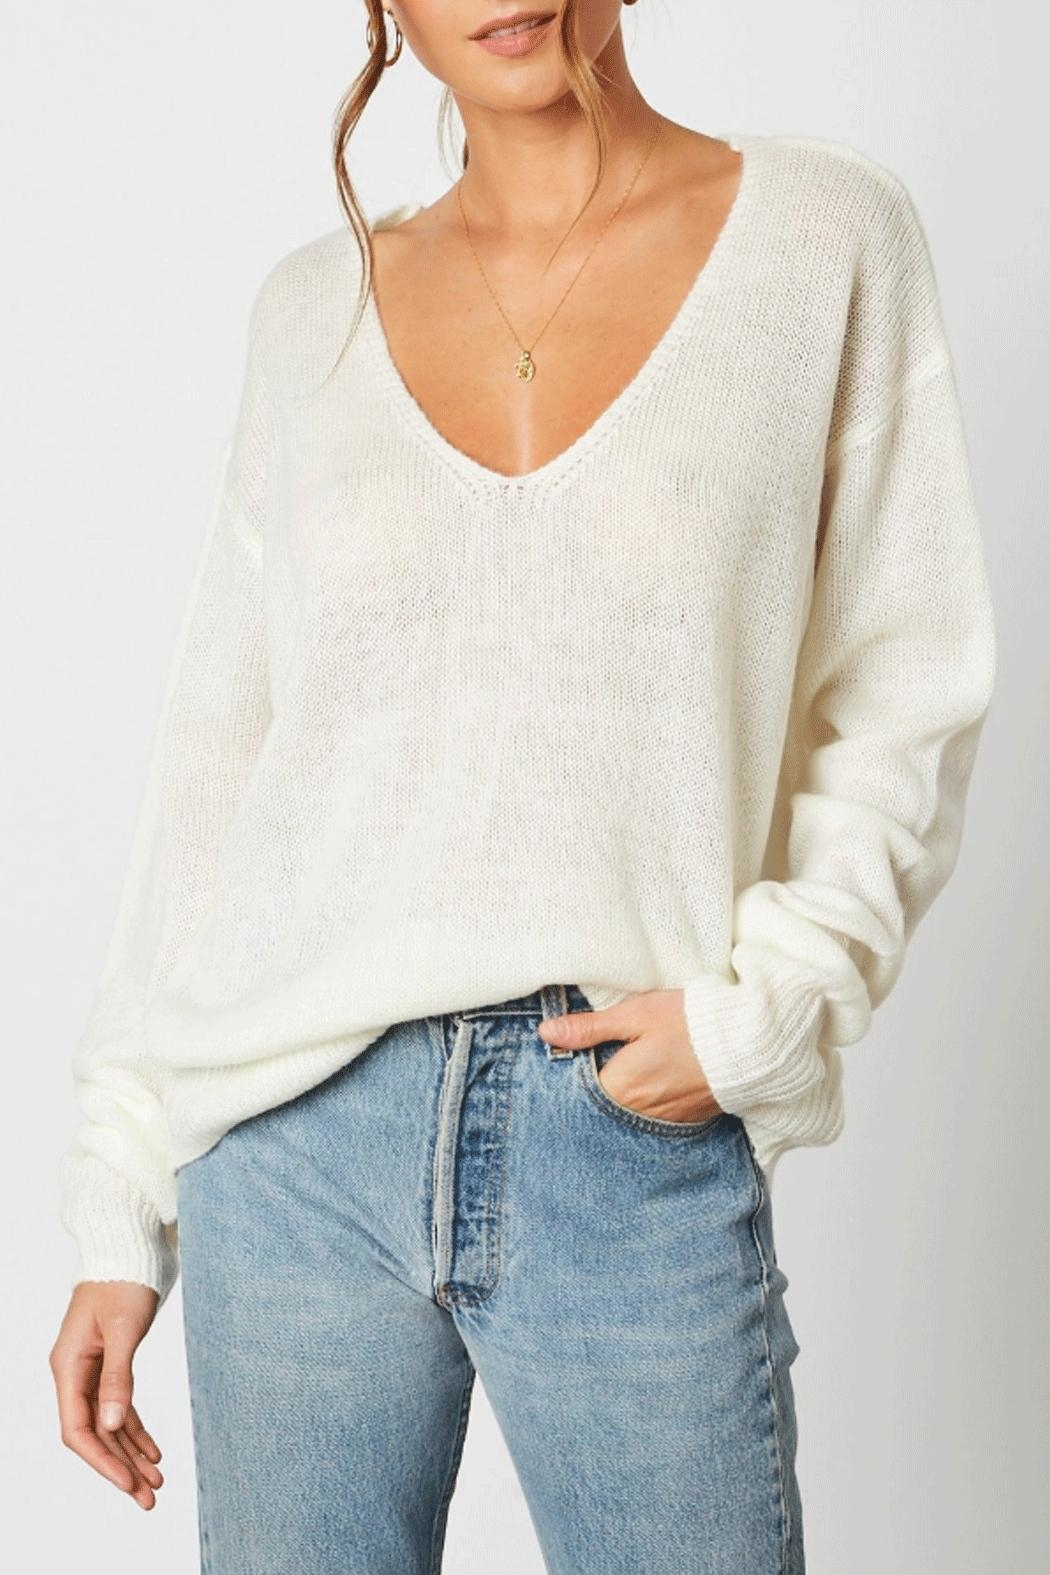 Cotton Candy Deep V-Neck Sweater - Main Image